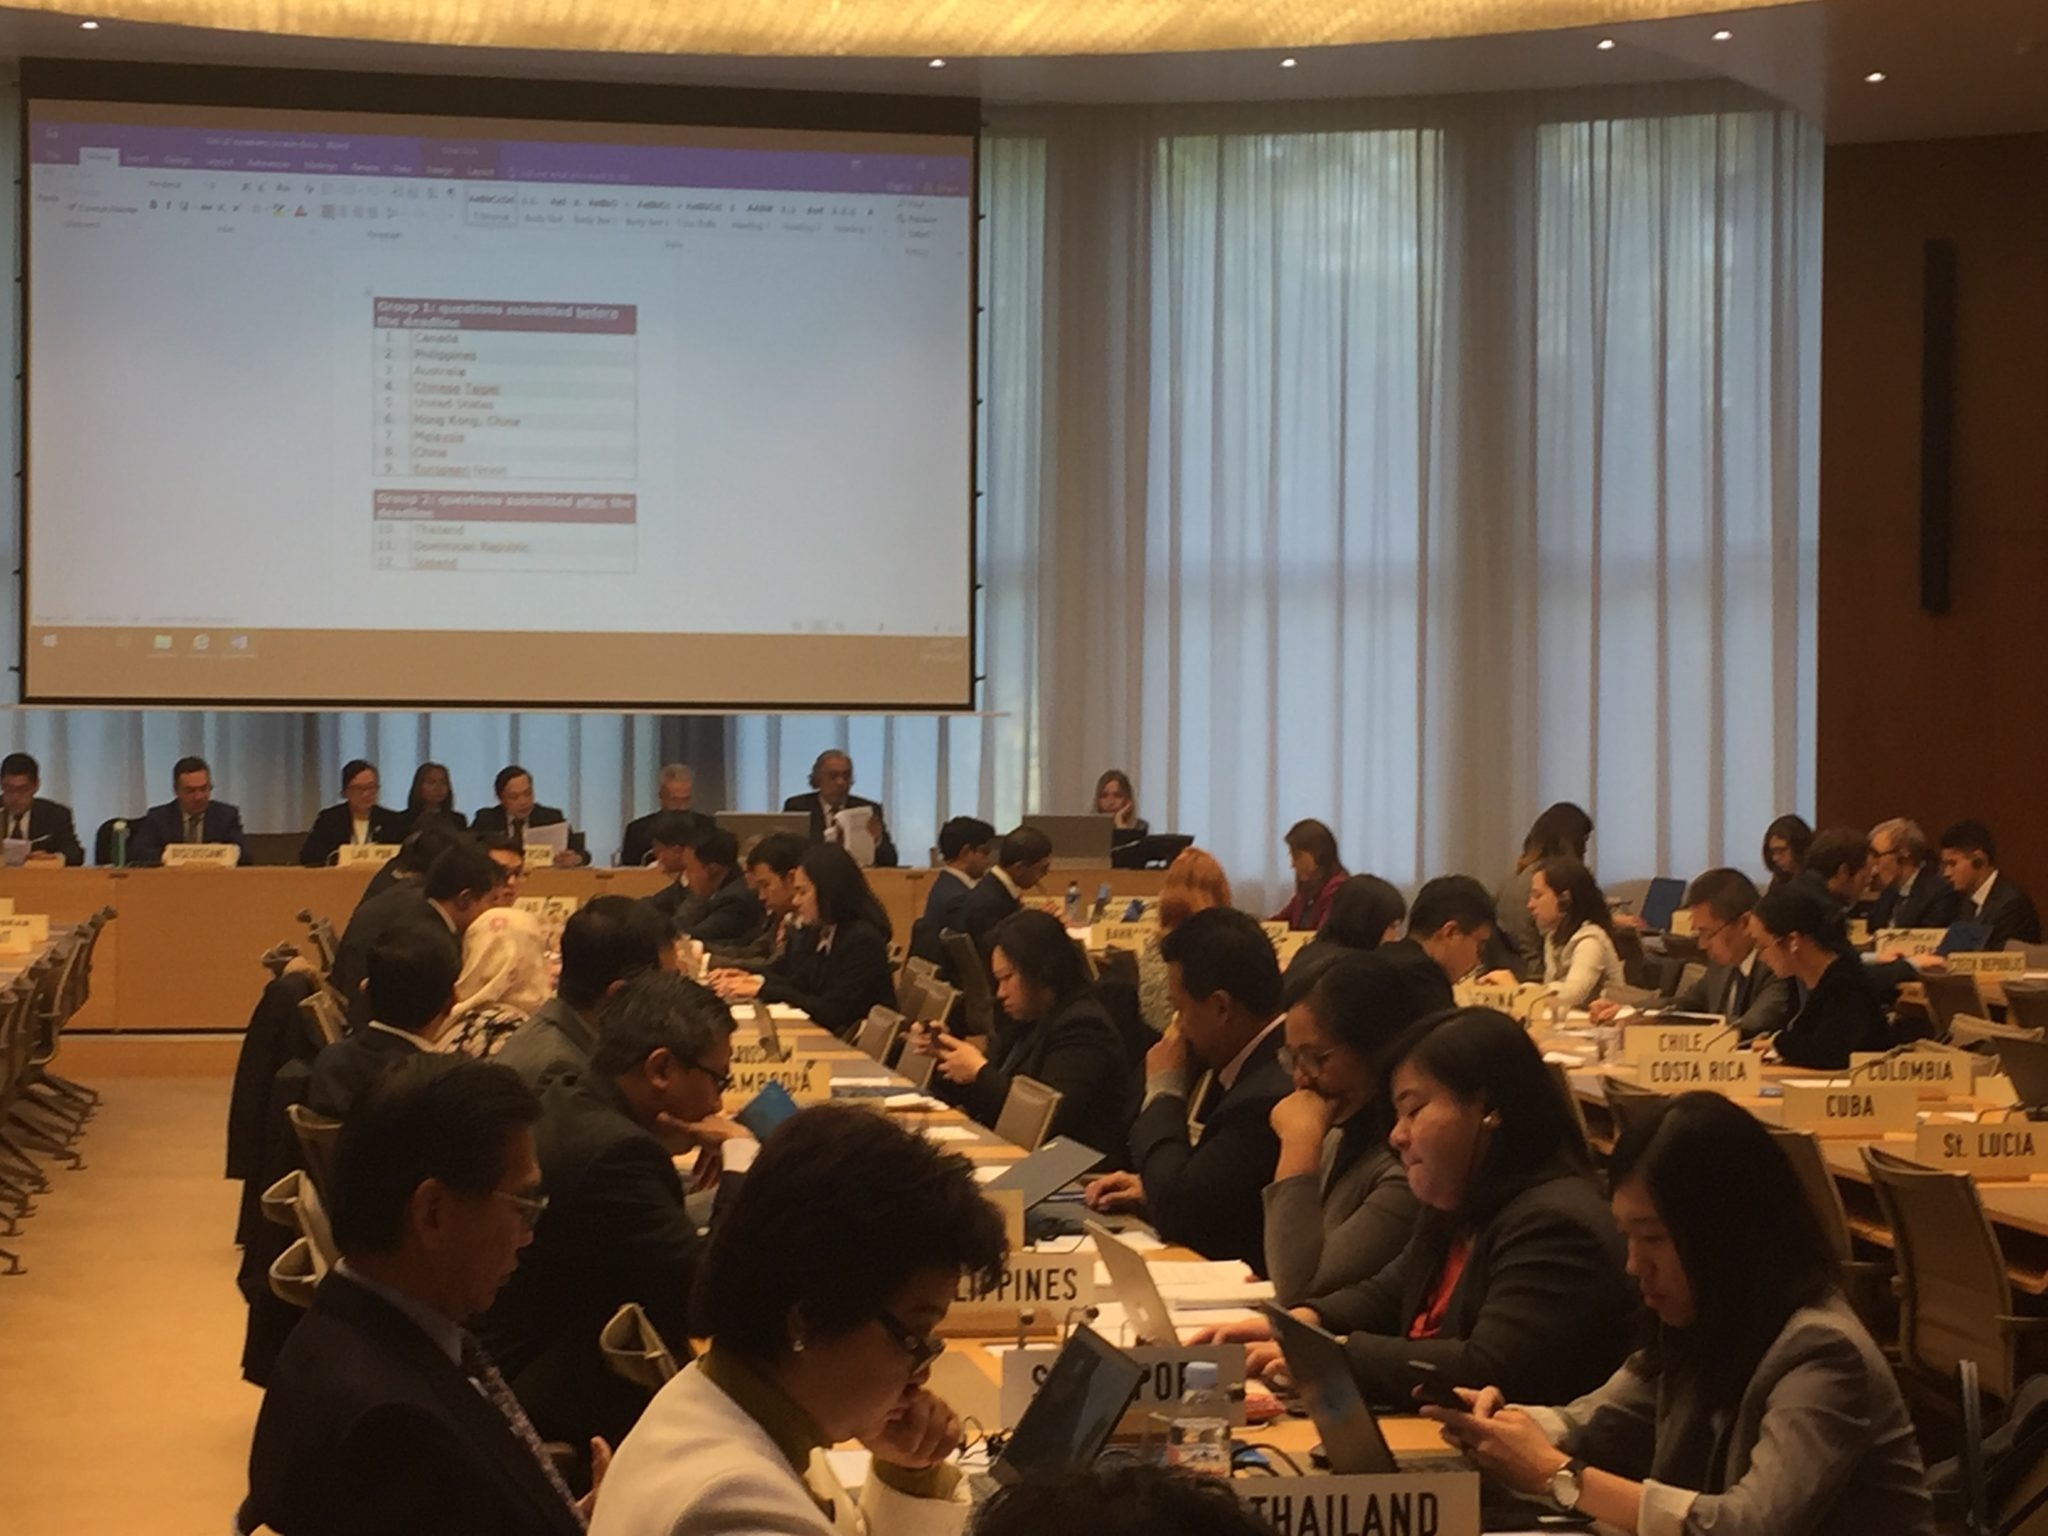 TPR of Lao PDR, WTO Room W, Session 1, 18.11.2019, Opening remarks by the Chairperson.